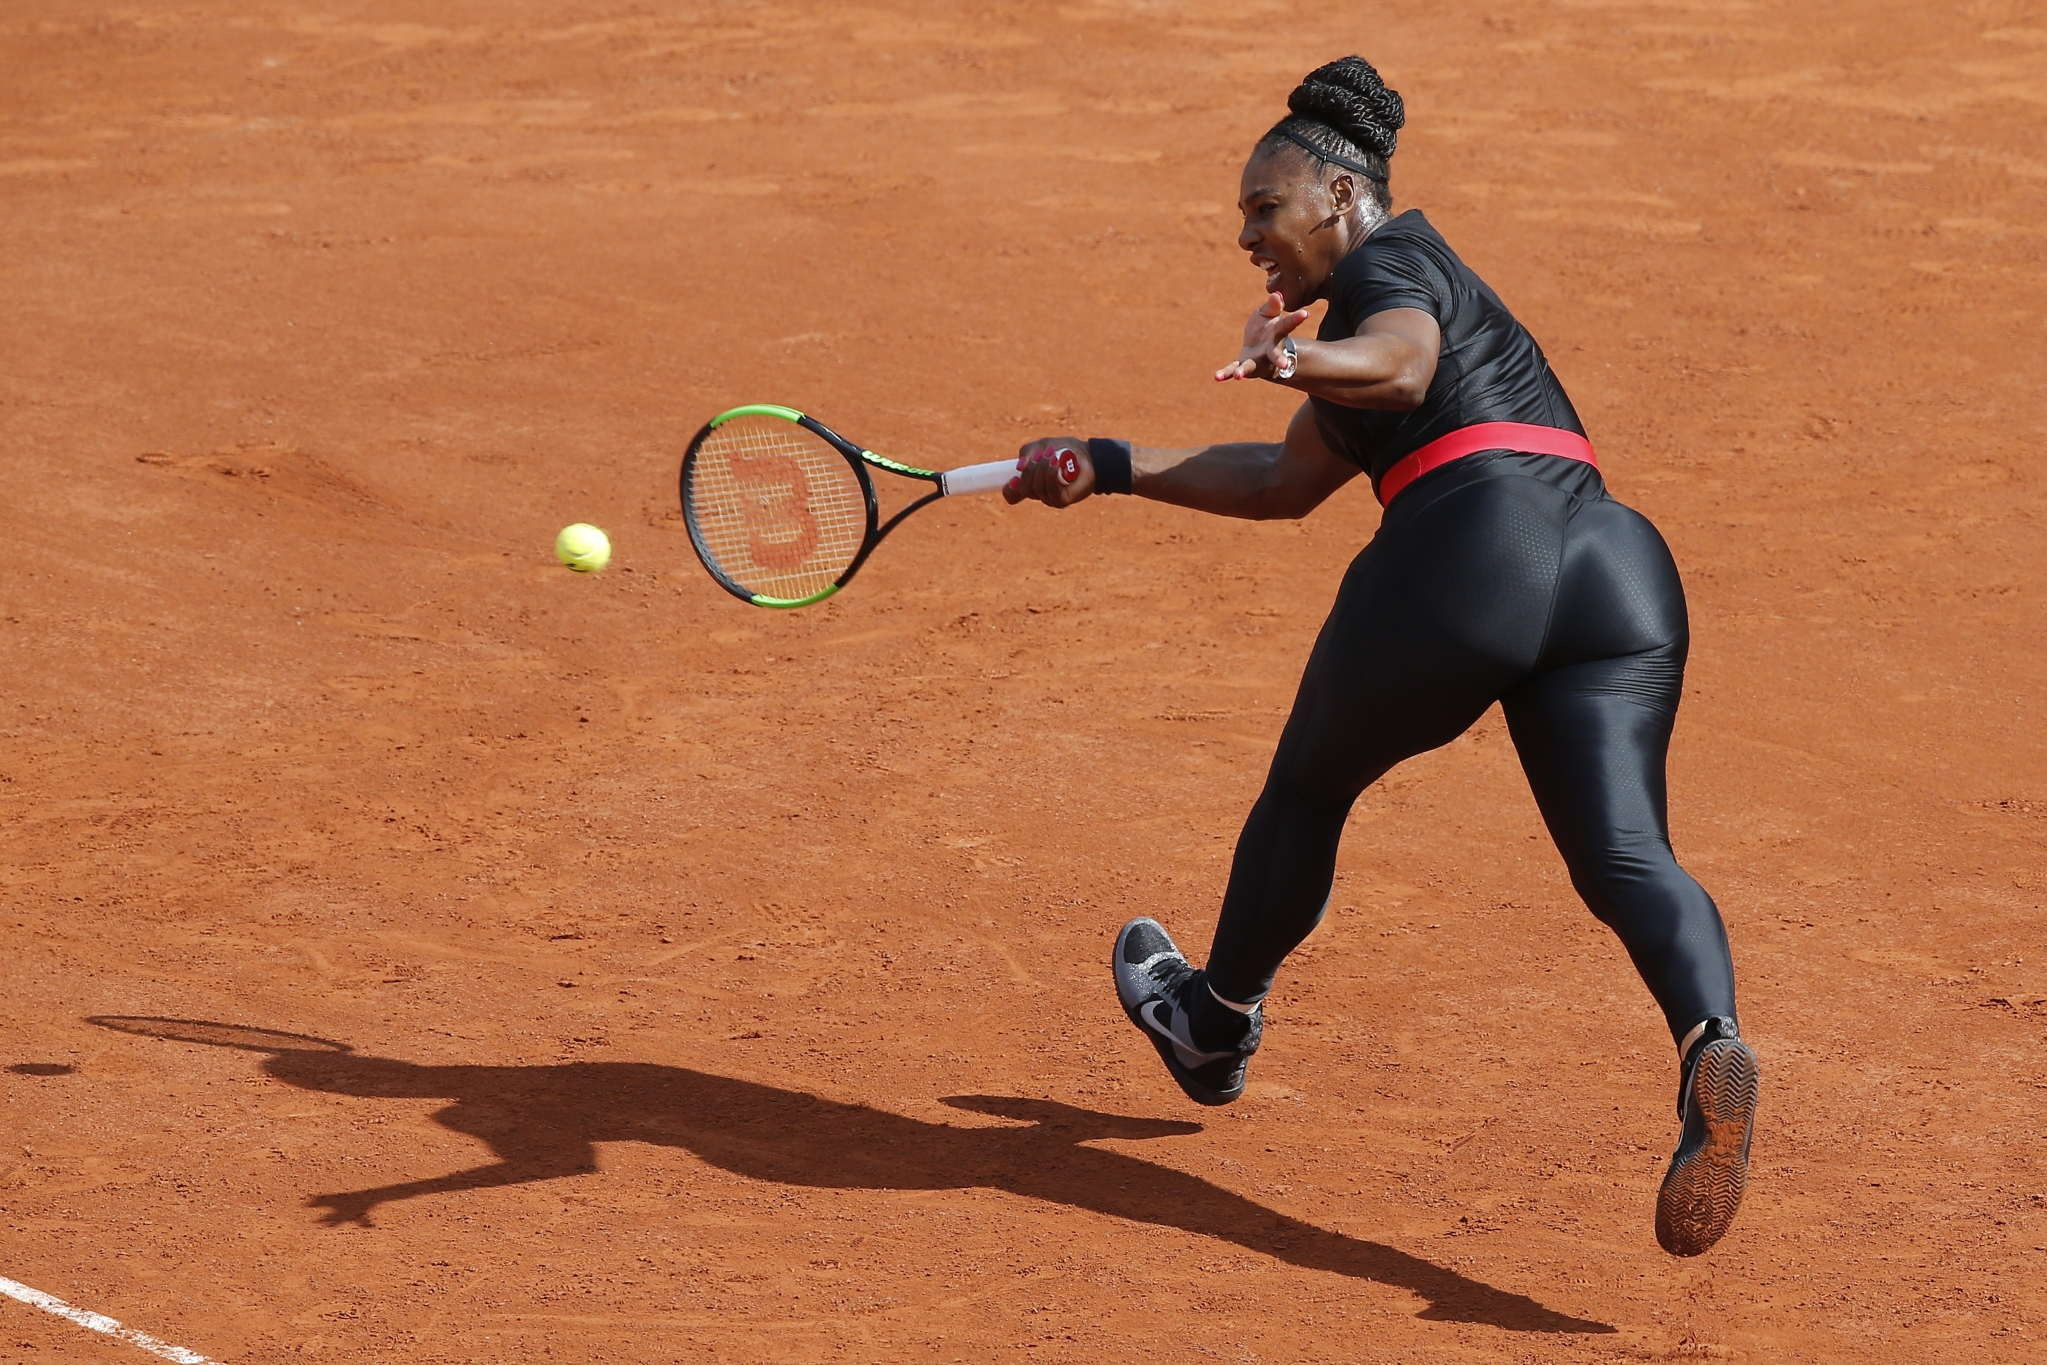 French Open bans Serena Williams from wearing black catsuit